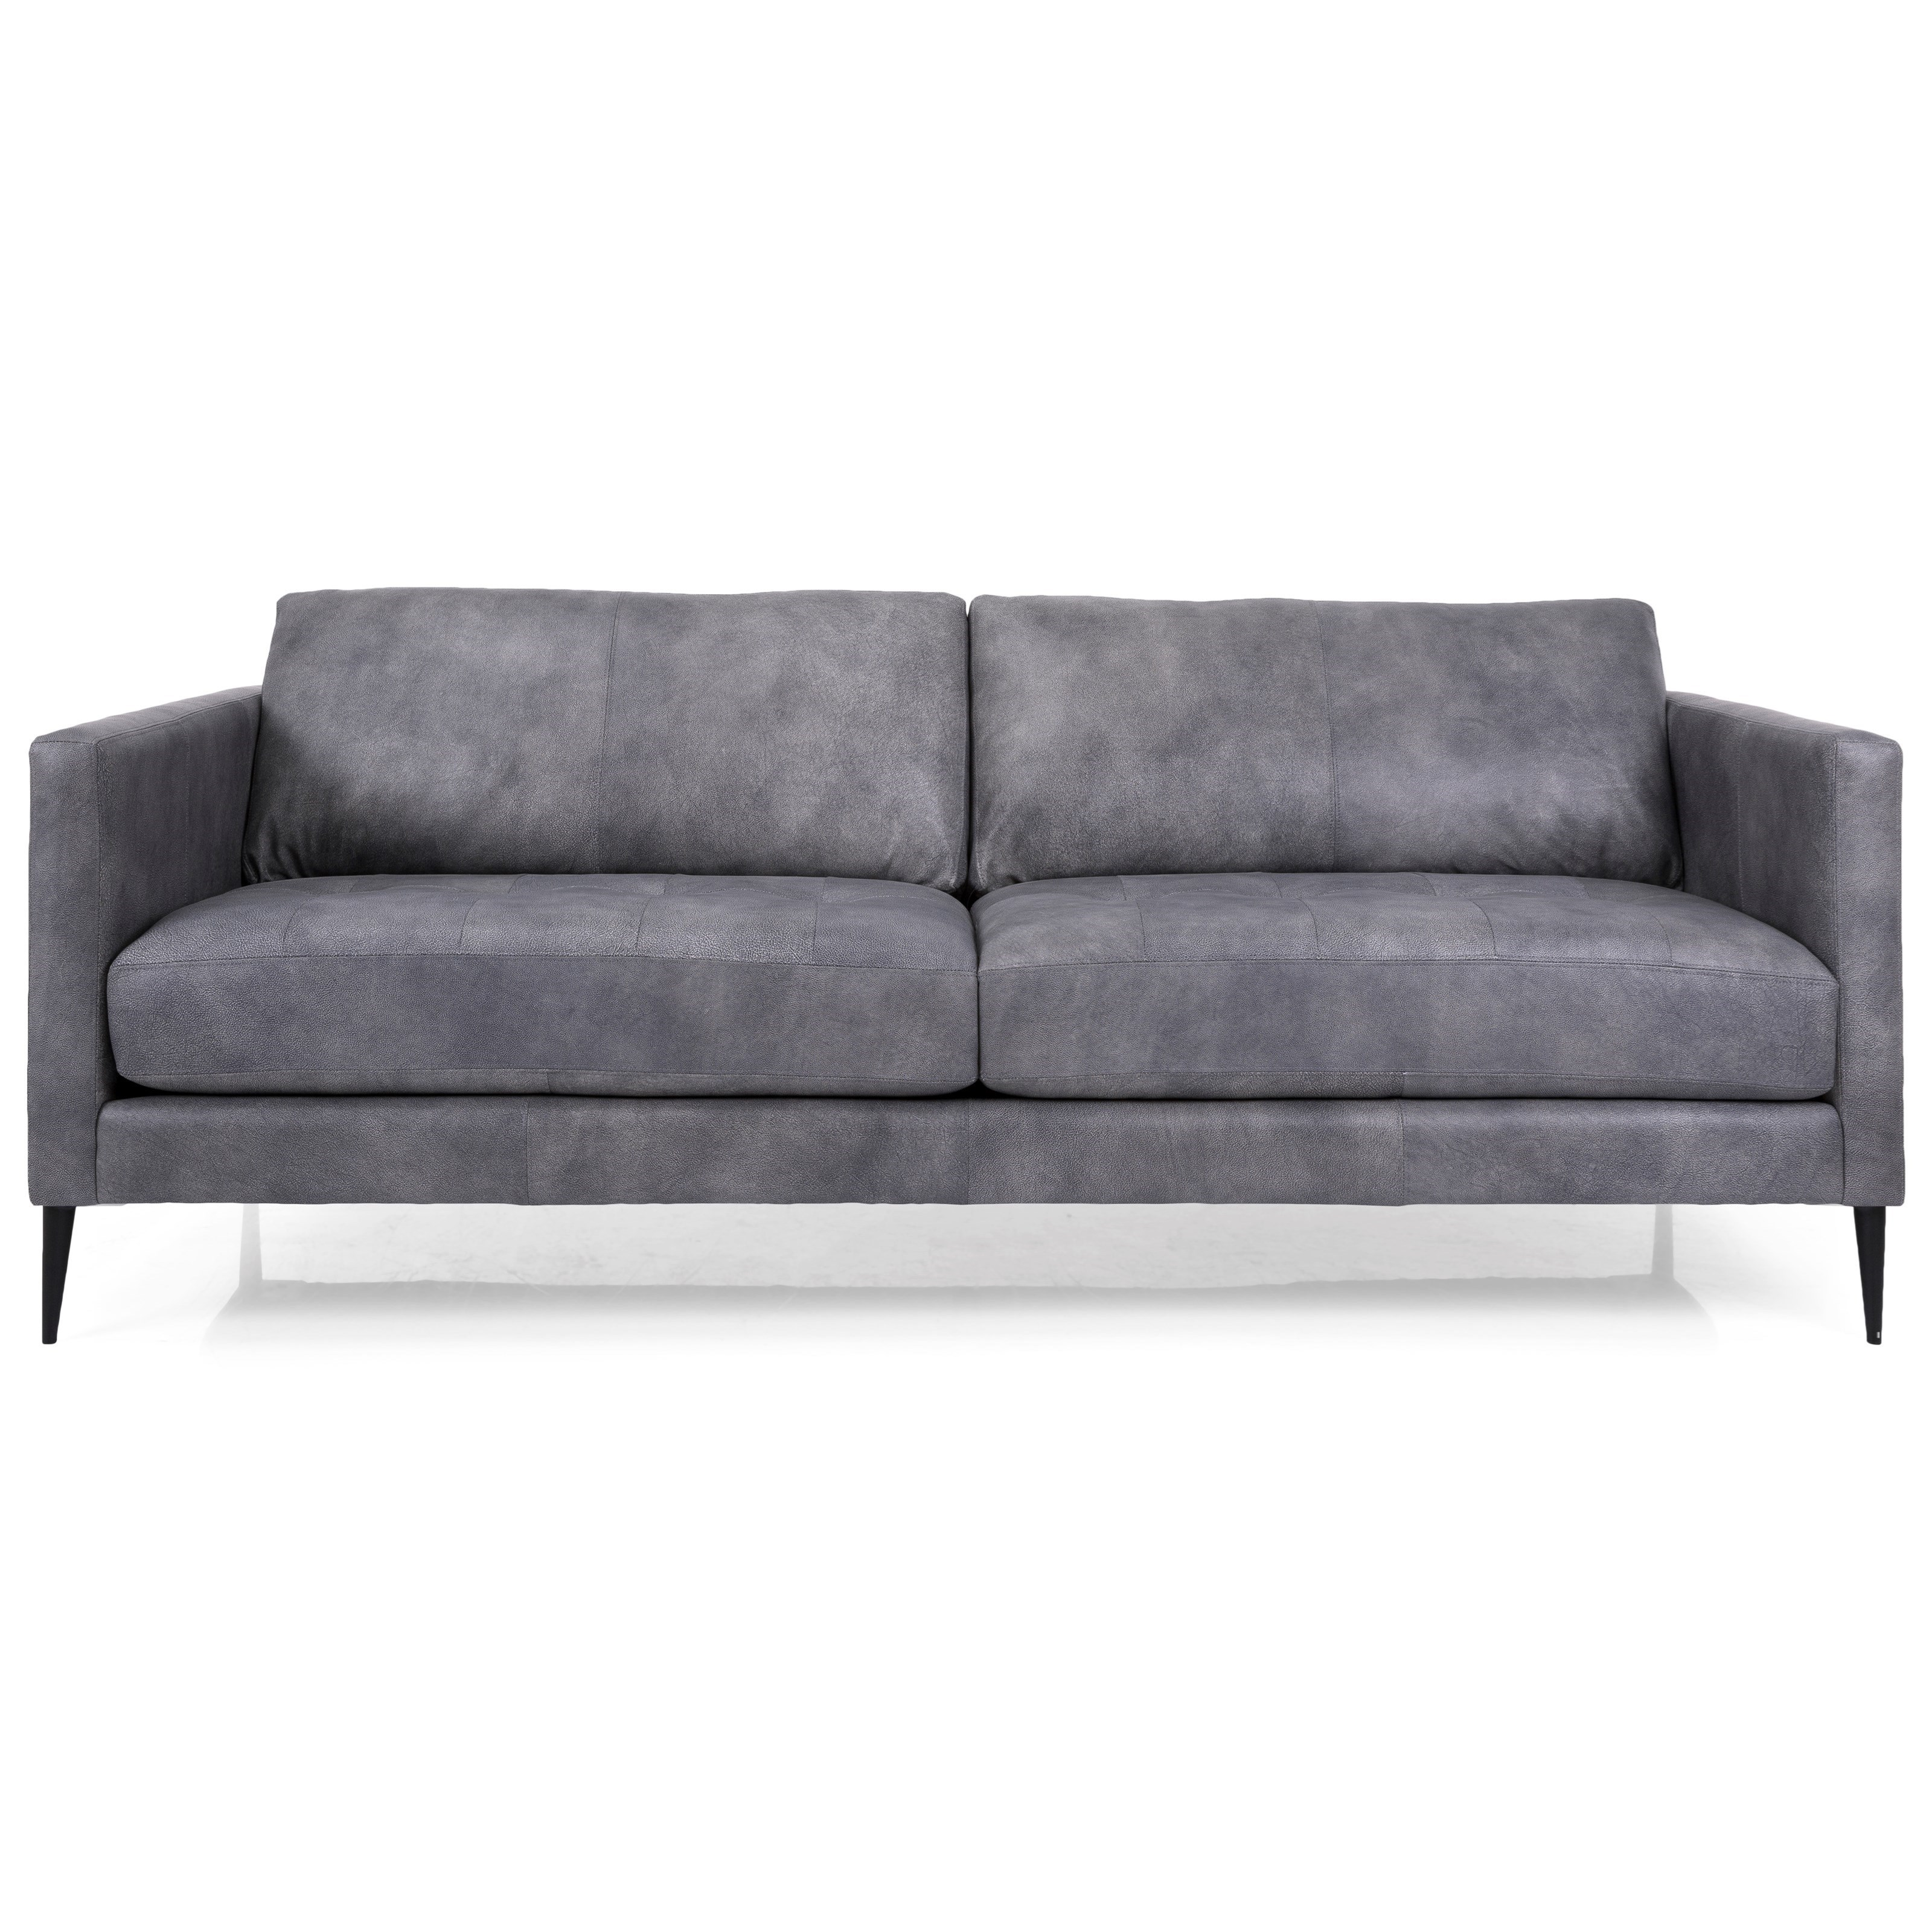 3M3 Sofa by Decor-Rest at Rooms for Less